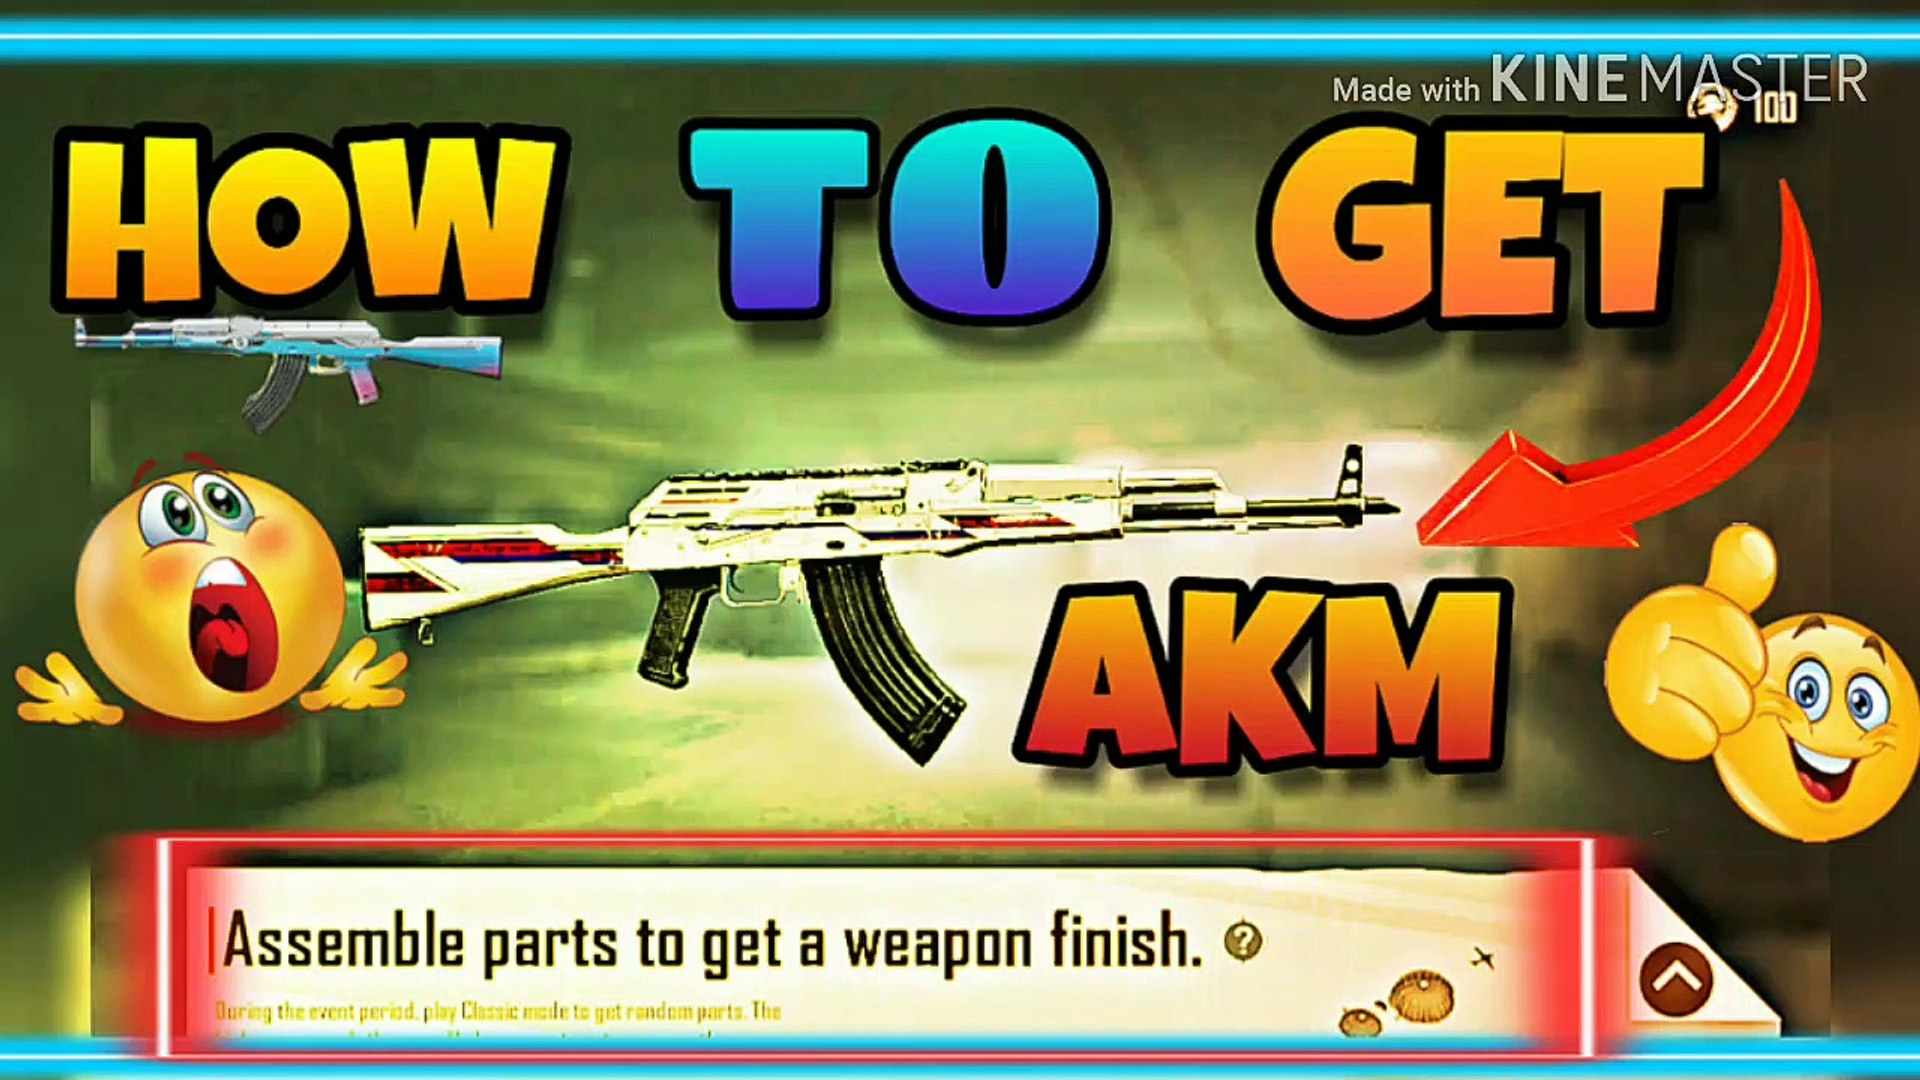 Assemble parts to get a weapon finish in pubg mobile NEW TRIKE||PUBG MOBILE||